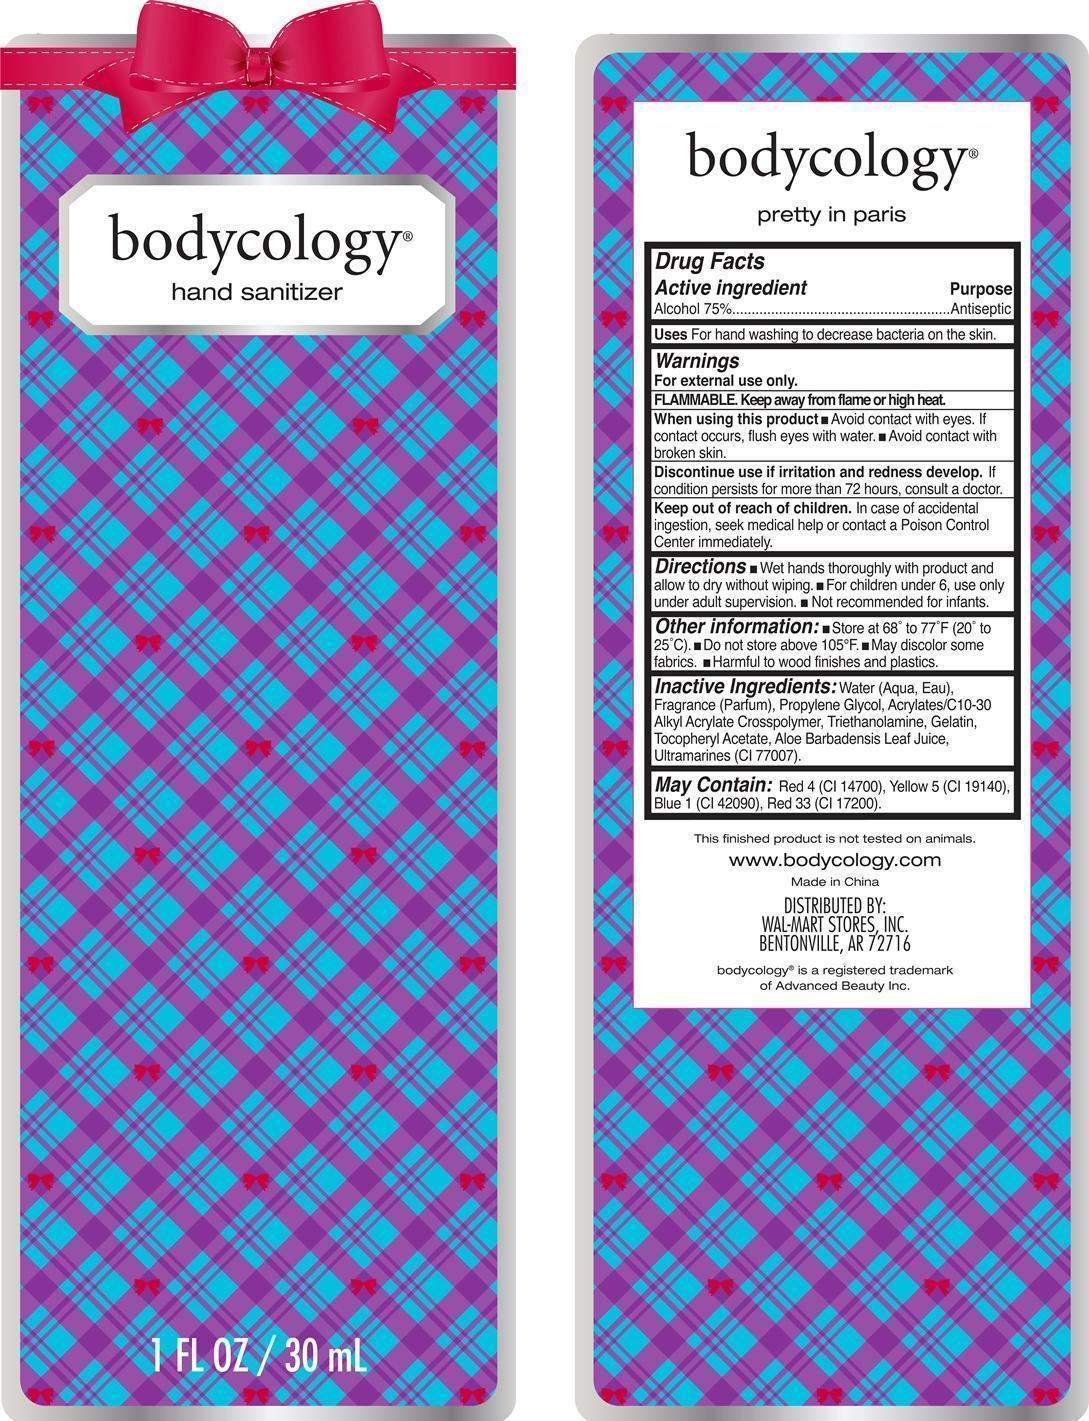 Pretty In Paris Hand Sanitizer Bodycology (Alcohol) Liquid [Wal-mart Stores Inc]